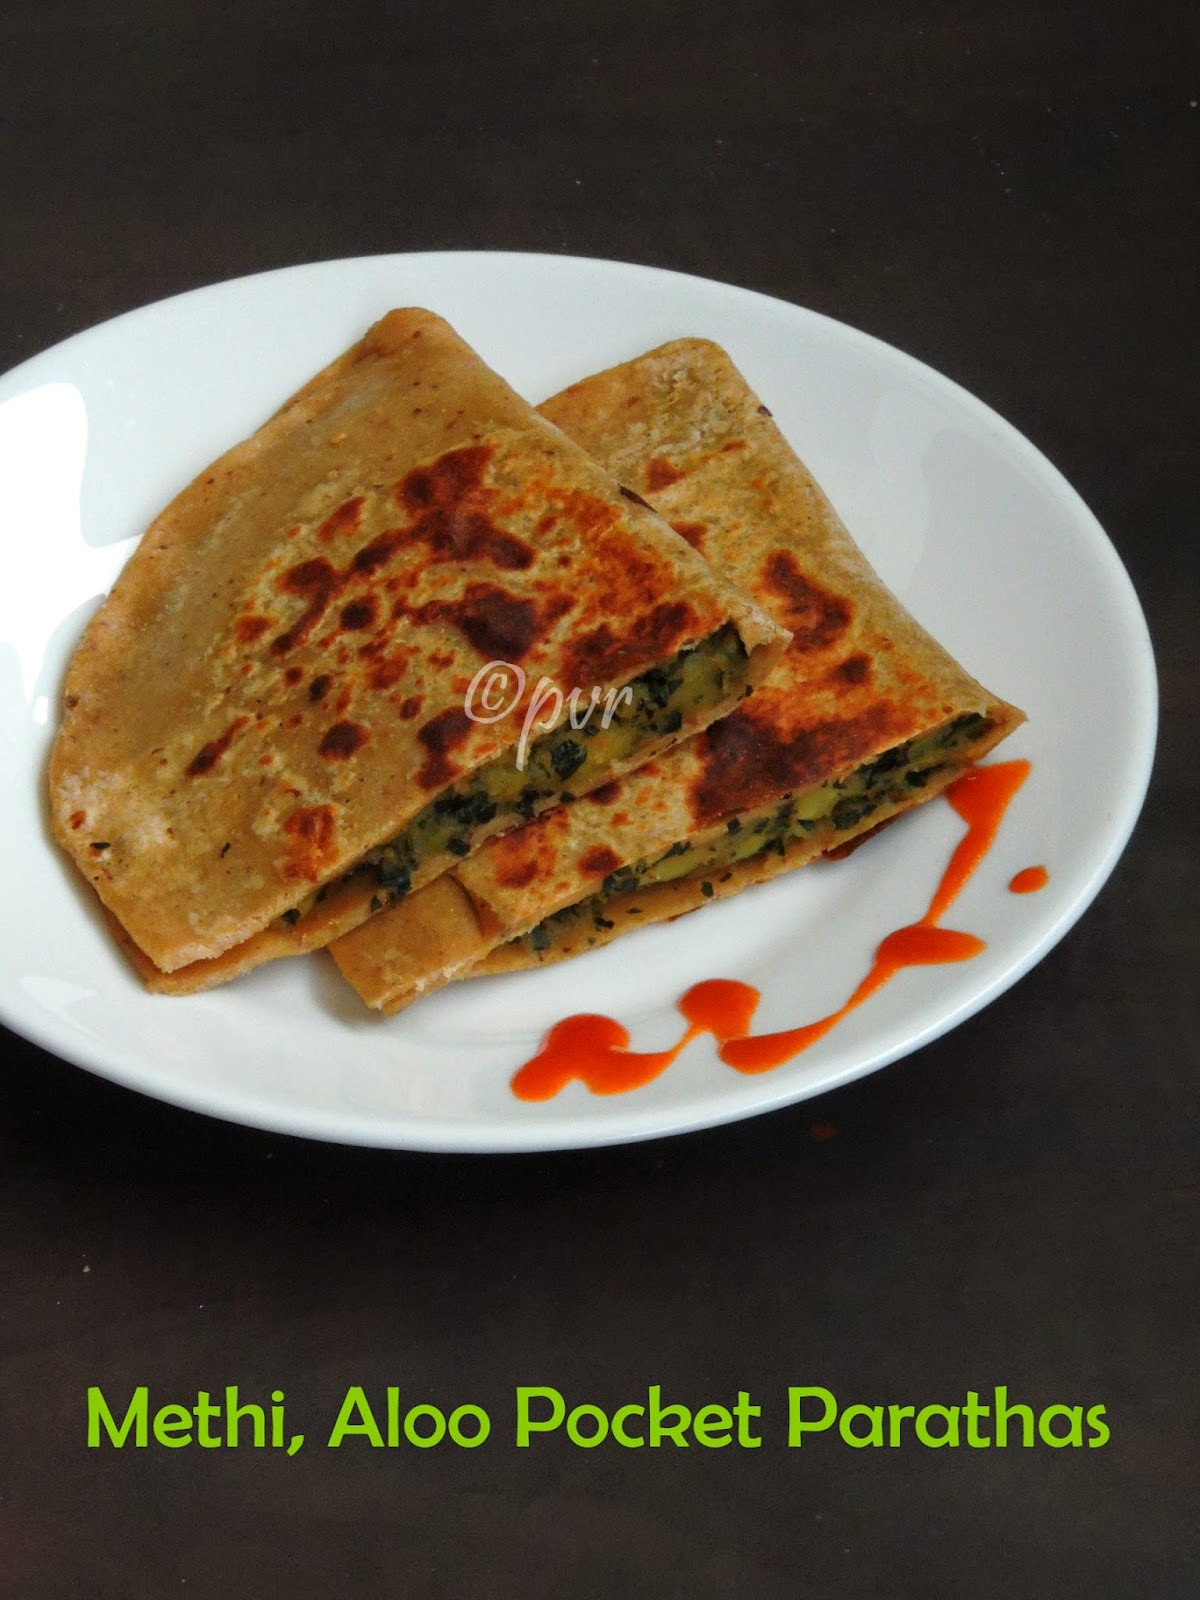 Methi & Aloo pocket parathas